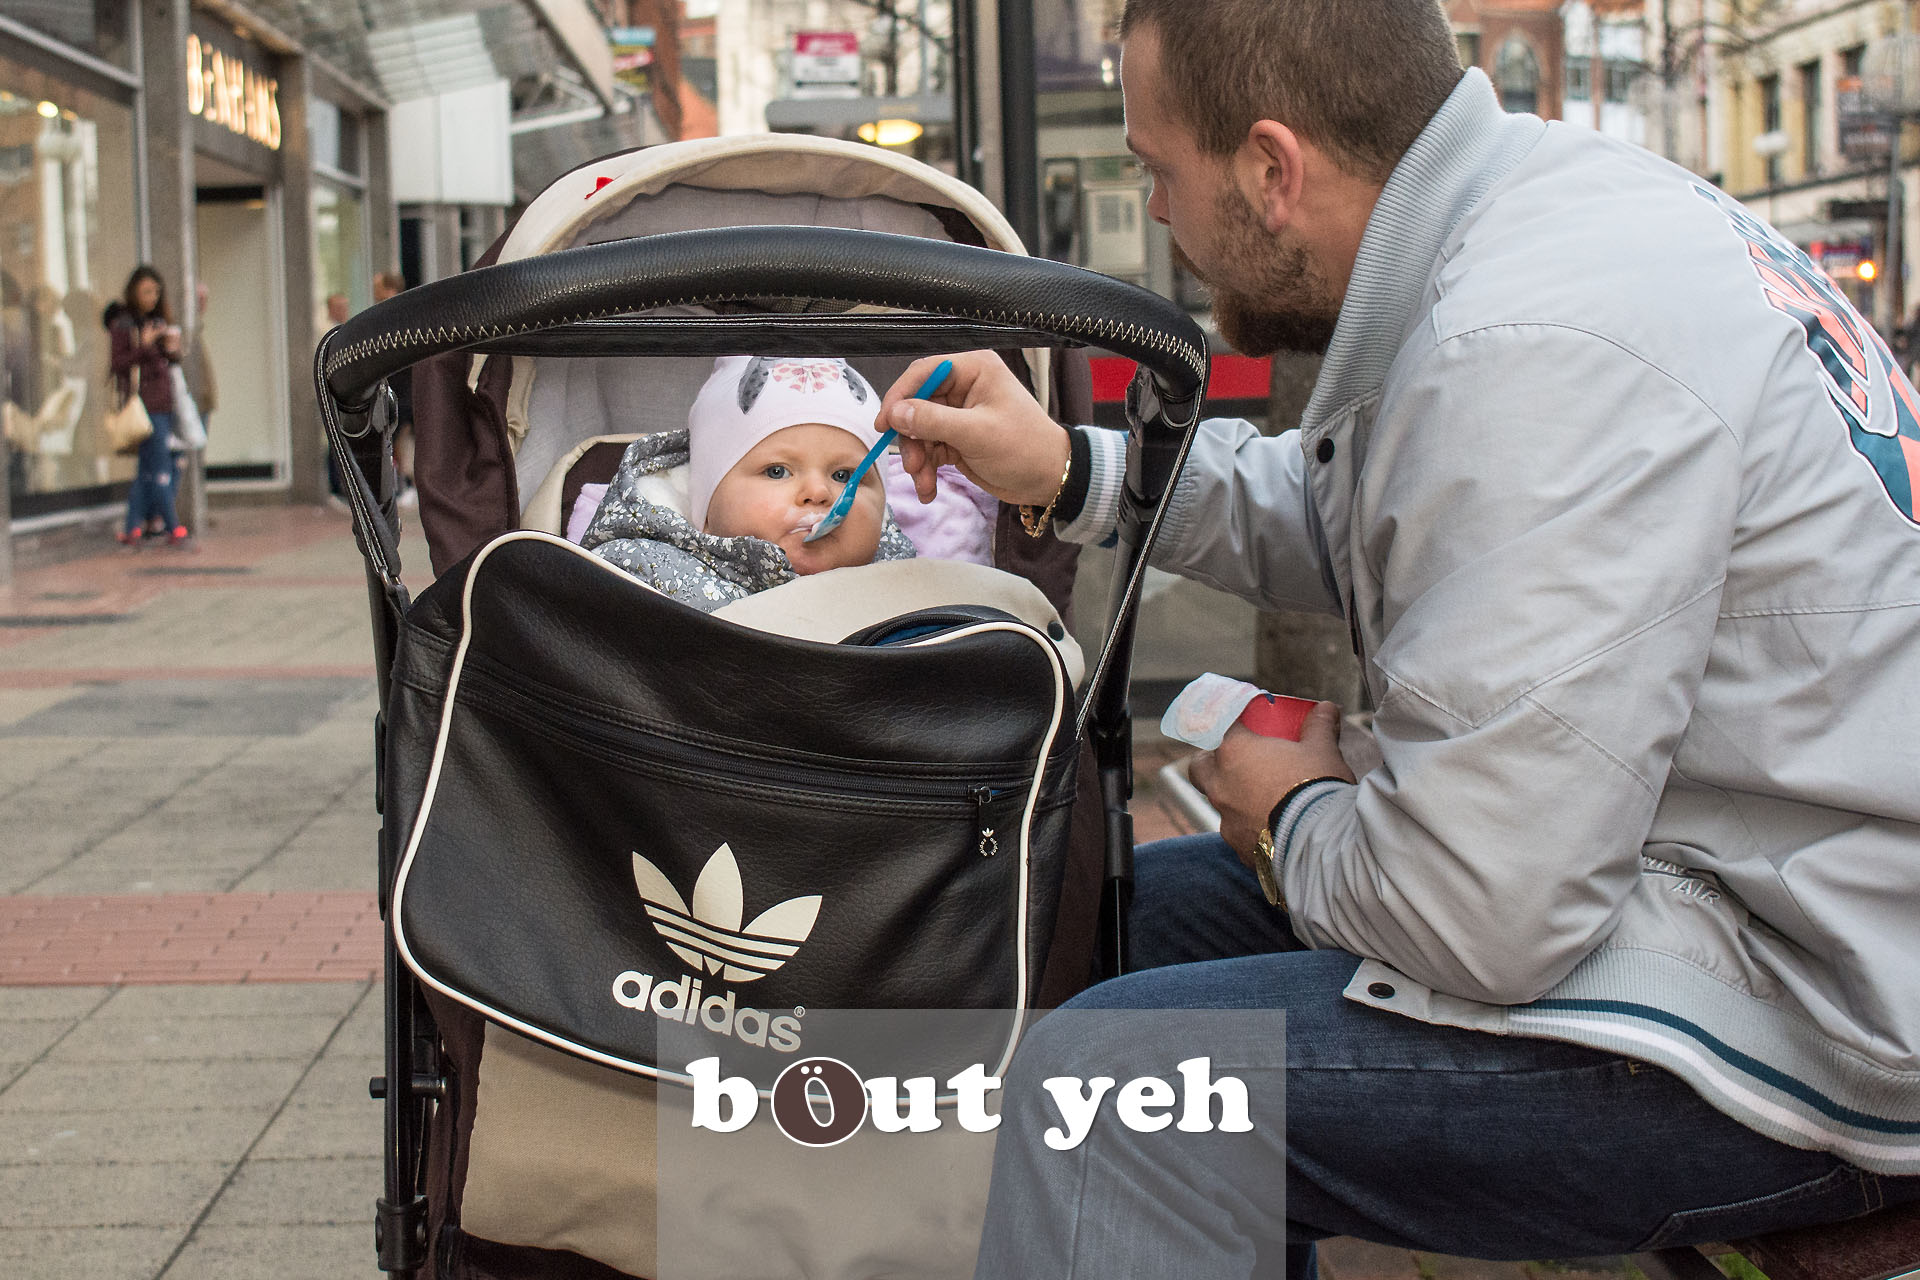 Man feeding baby, Royal Avenue, Belfast - photo 2831.